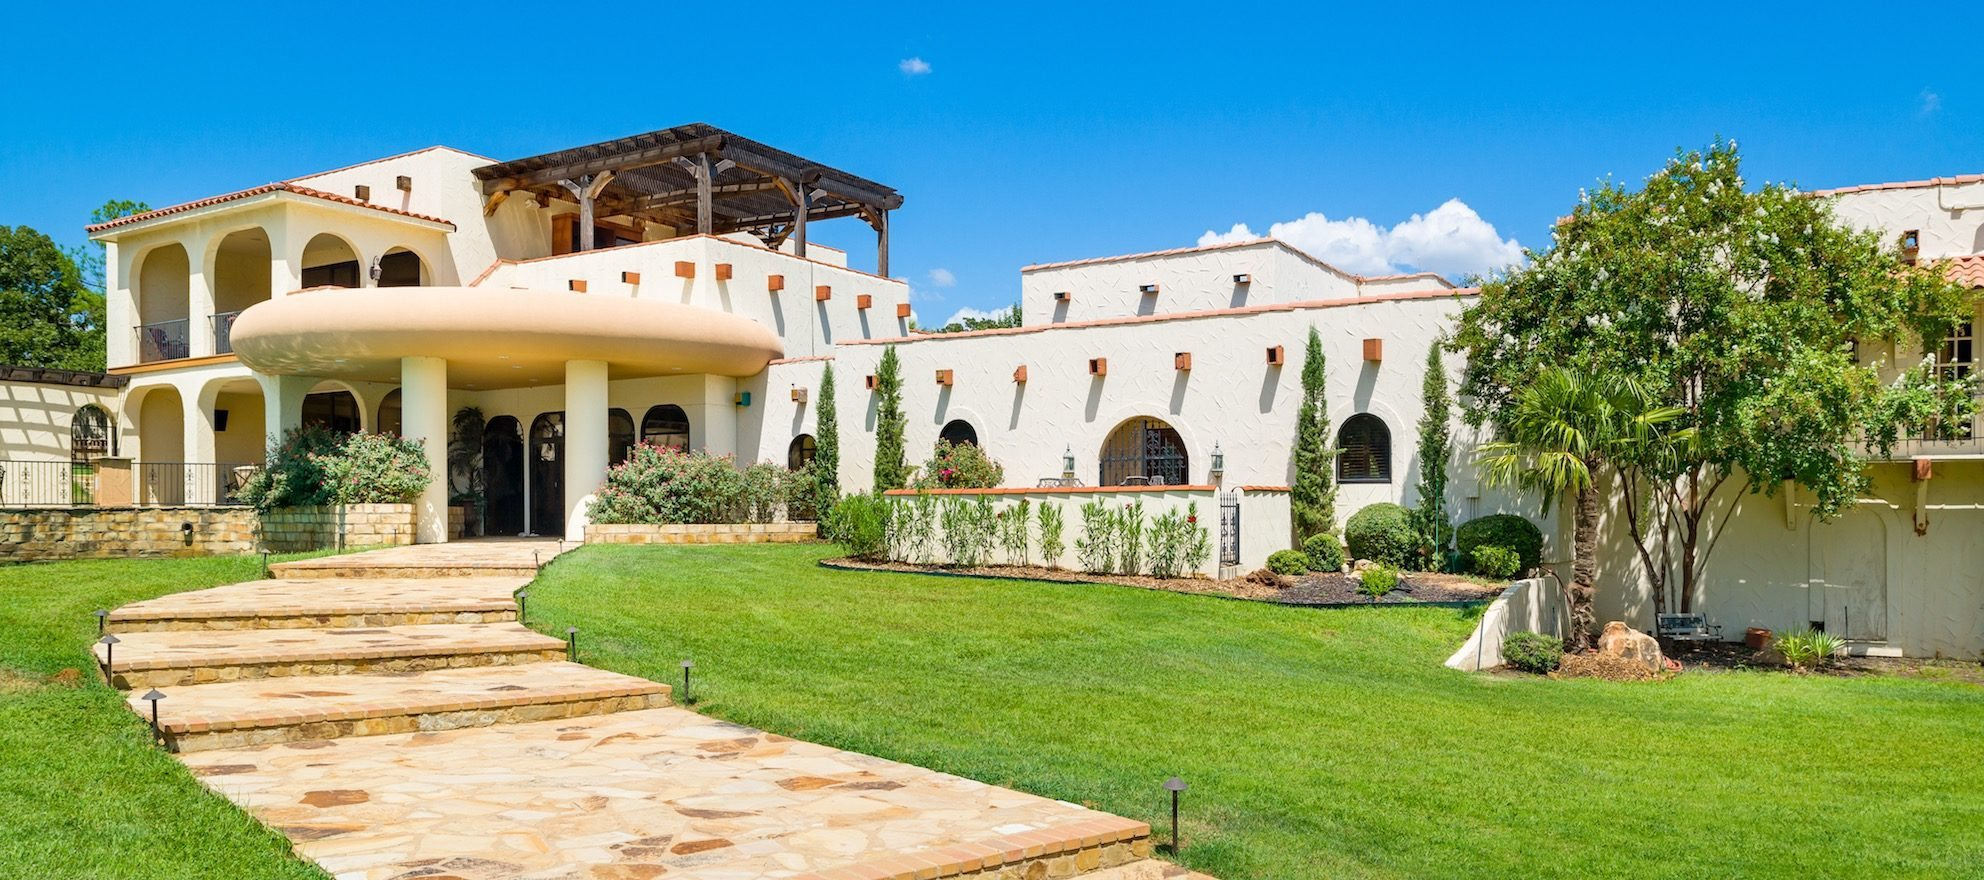 Luxury listing of the day: 5-building compound in Argyle, TX